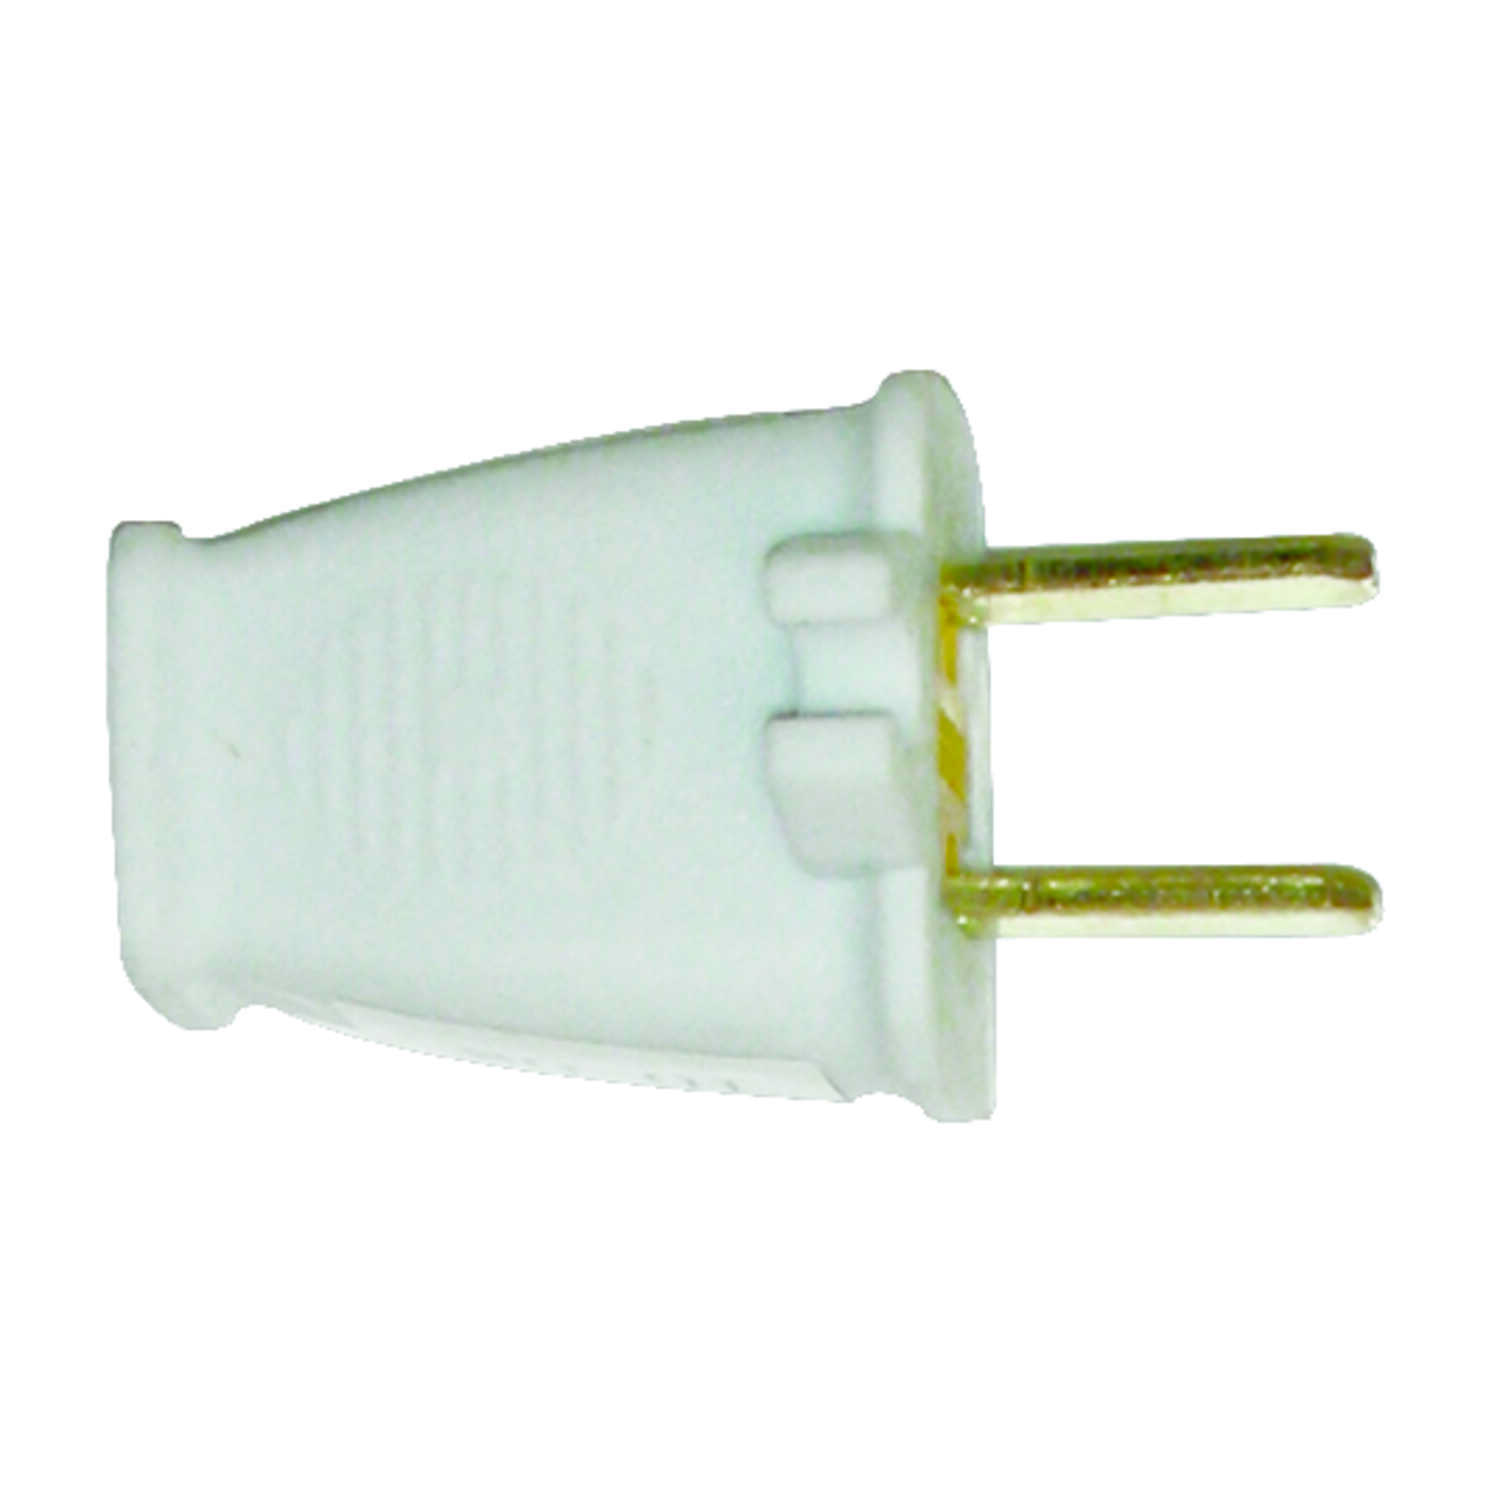 Pass & Seymour  Commercial and Residential  Thermoplastic  Non-Polarized  Plug w/Cord Clip  1-15P  1